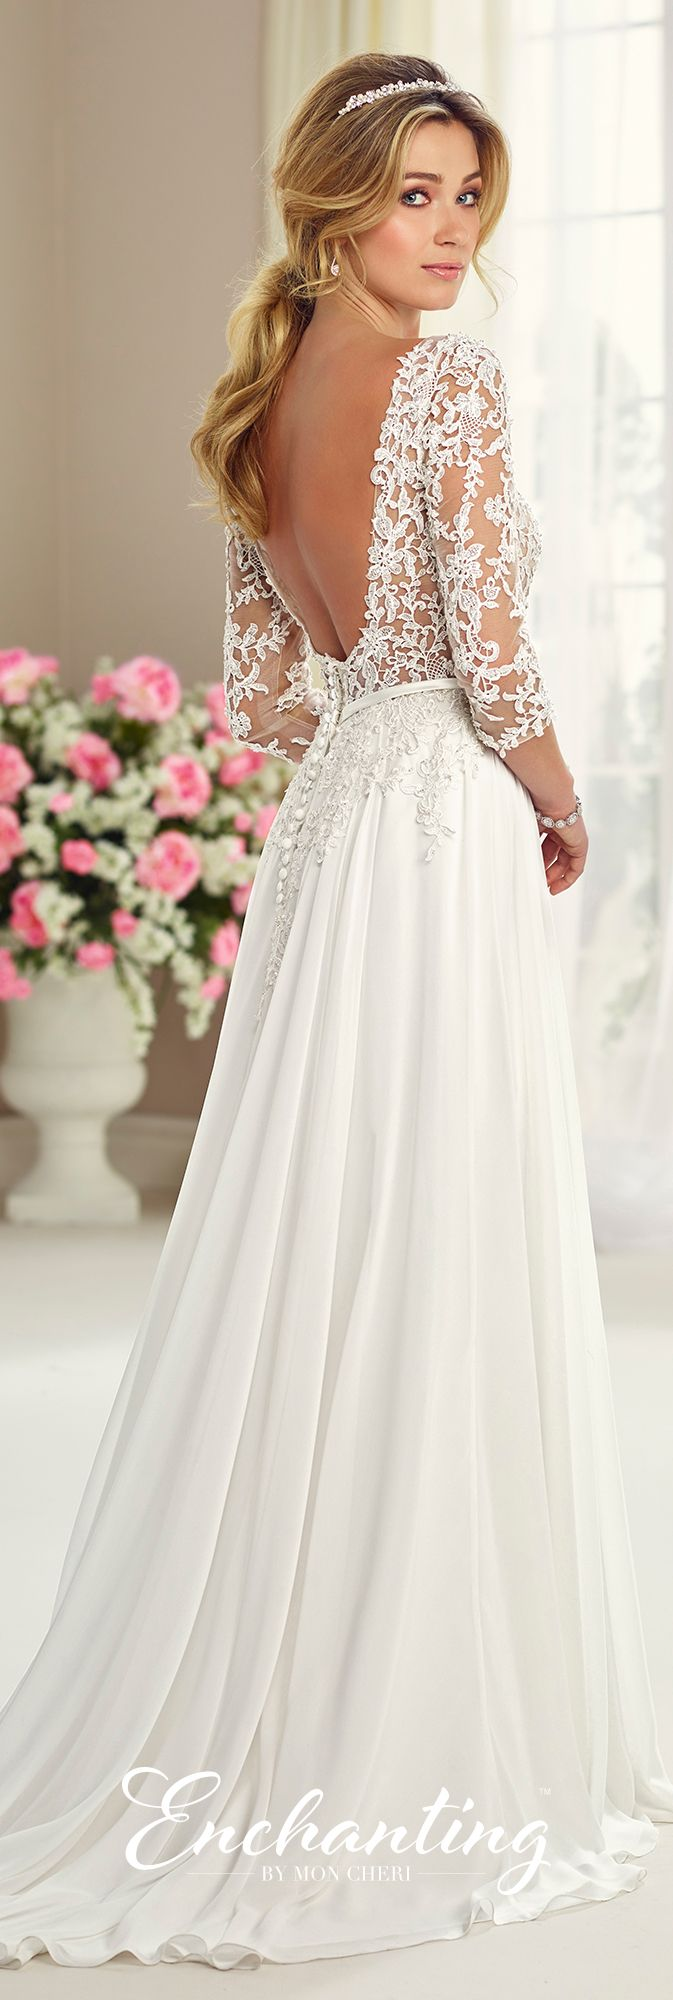 Best 25 wedding dresses ideas on pinterest lace wedding dresses chiffon tulle lace wedding gown enchanting by mon cheri 217108 junglespirit